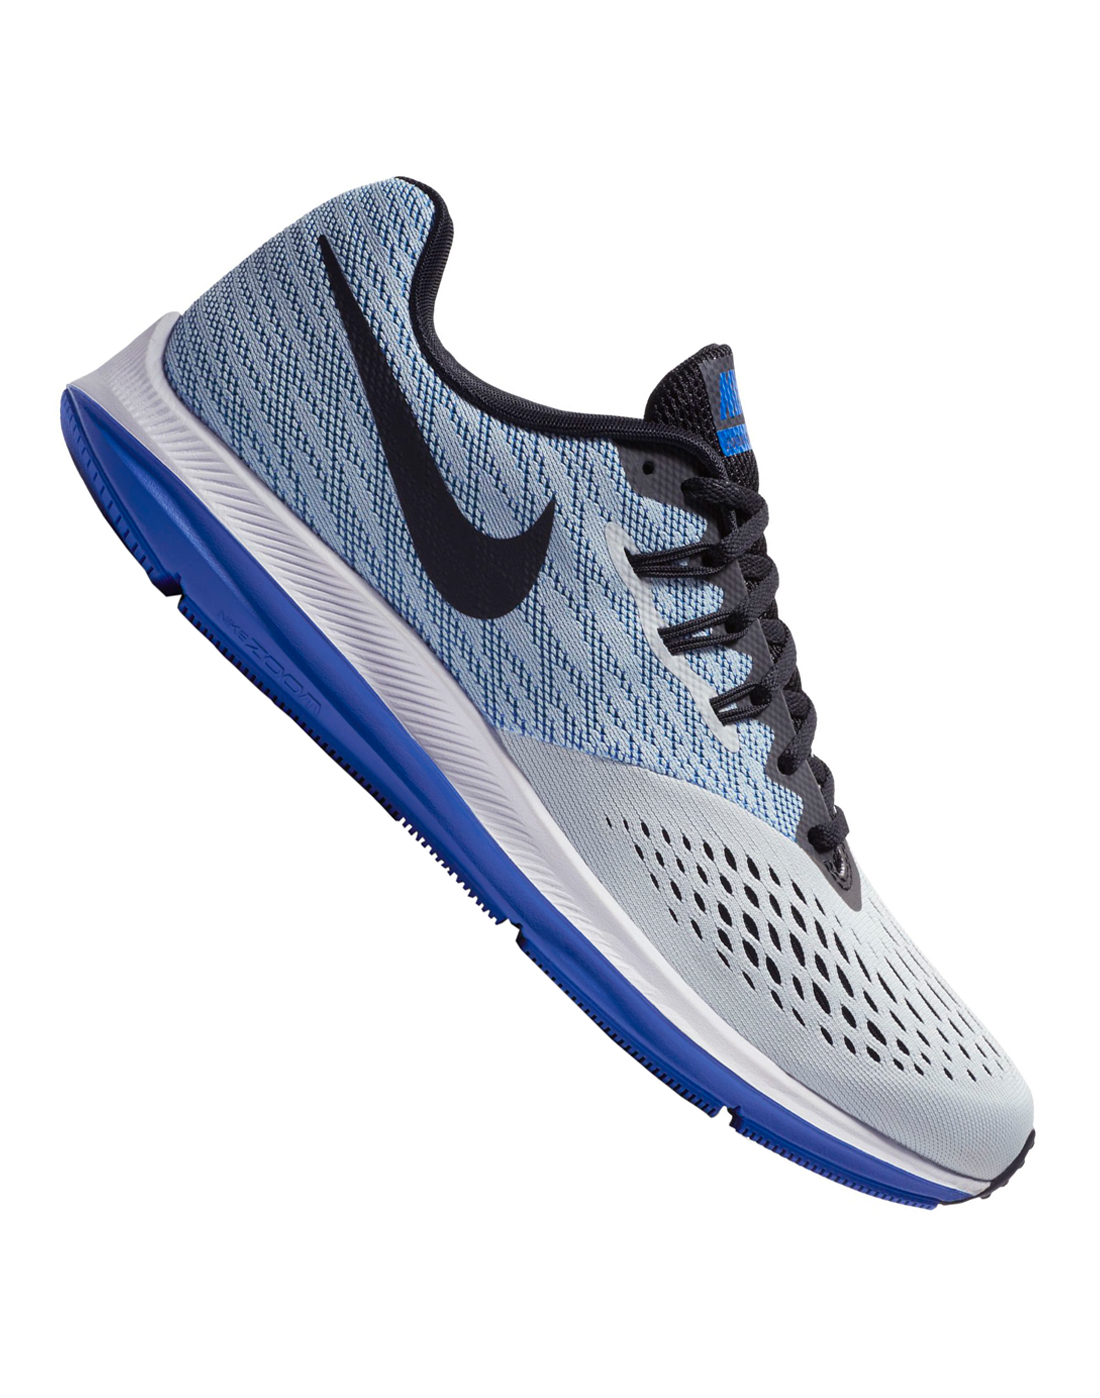 02f0bf4c68dcc Nike Mens Air Zoom Winflo 4